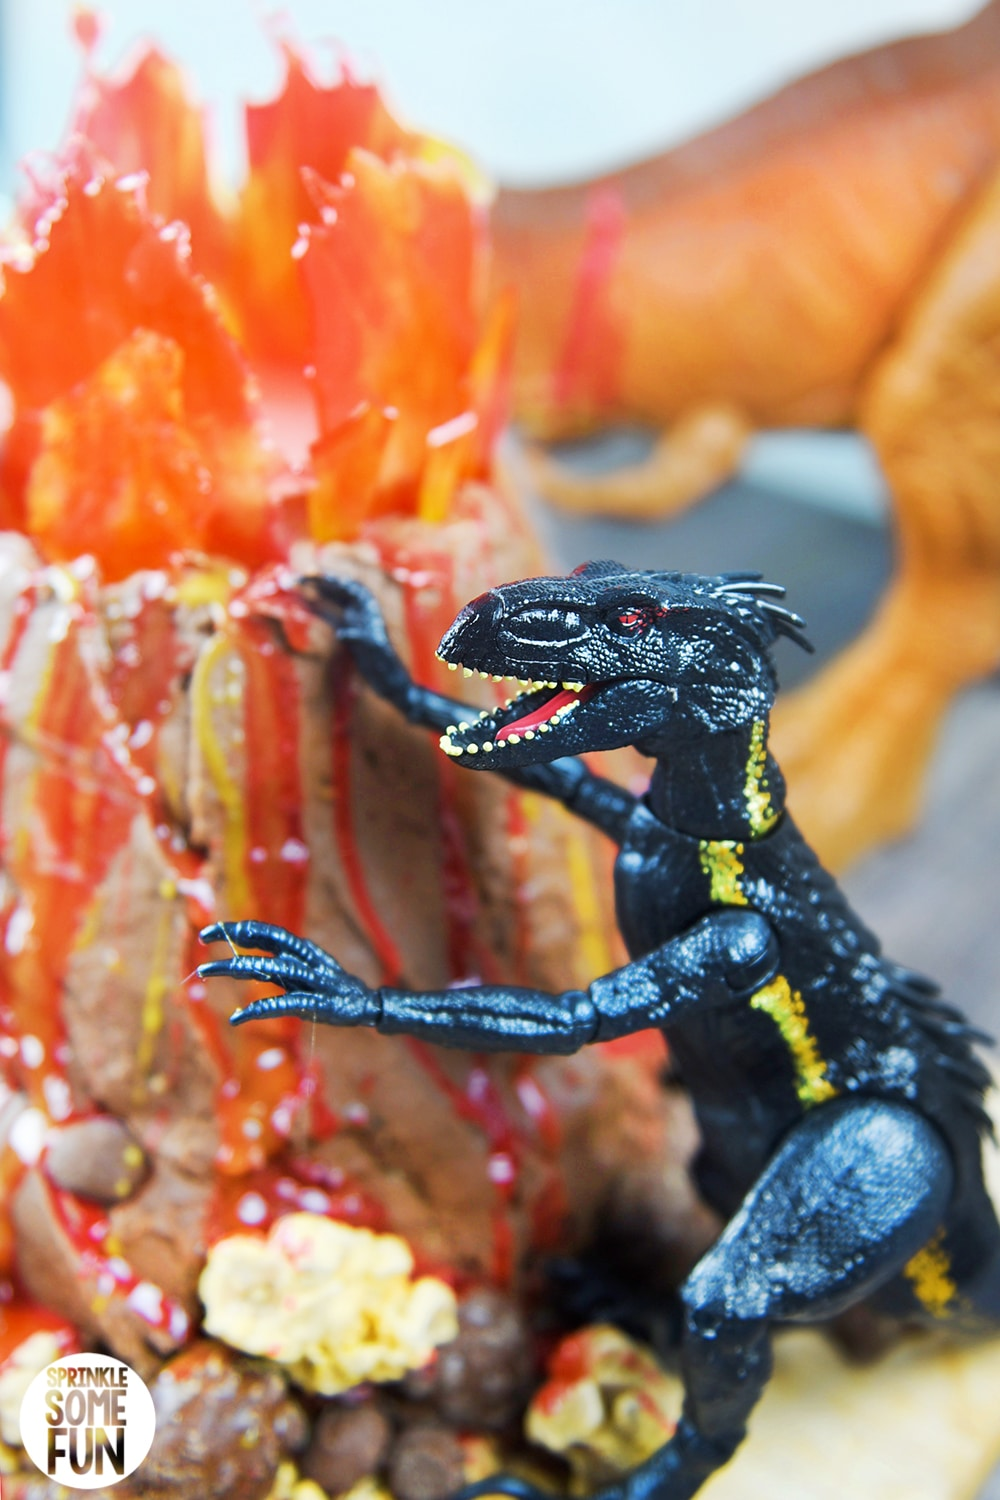 Volcano Cake with Jurassic World toys